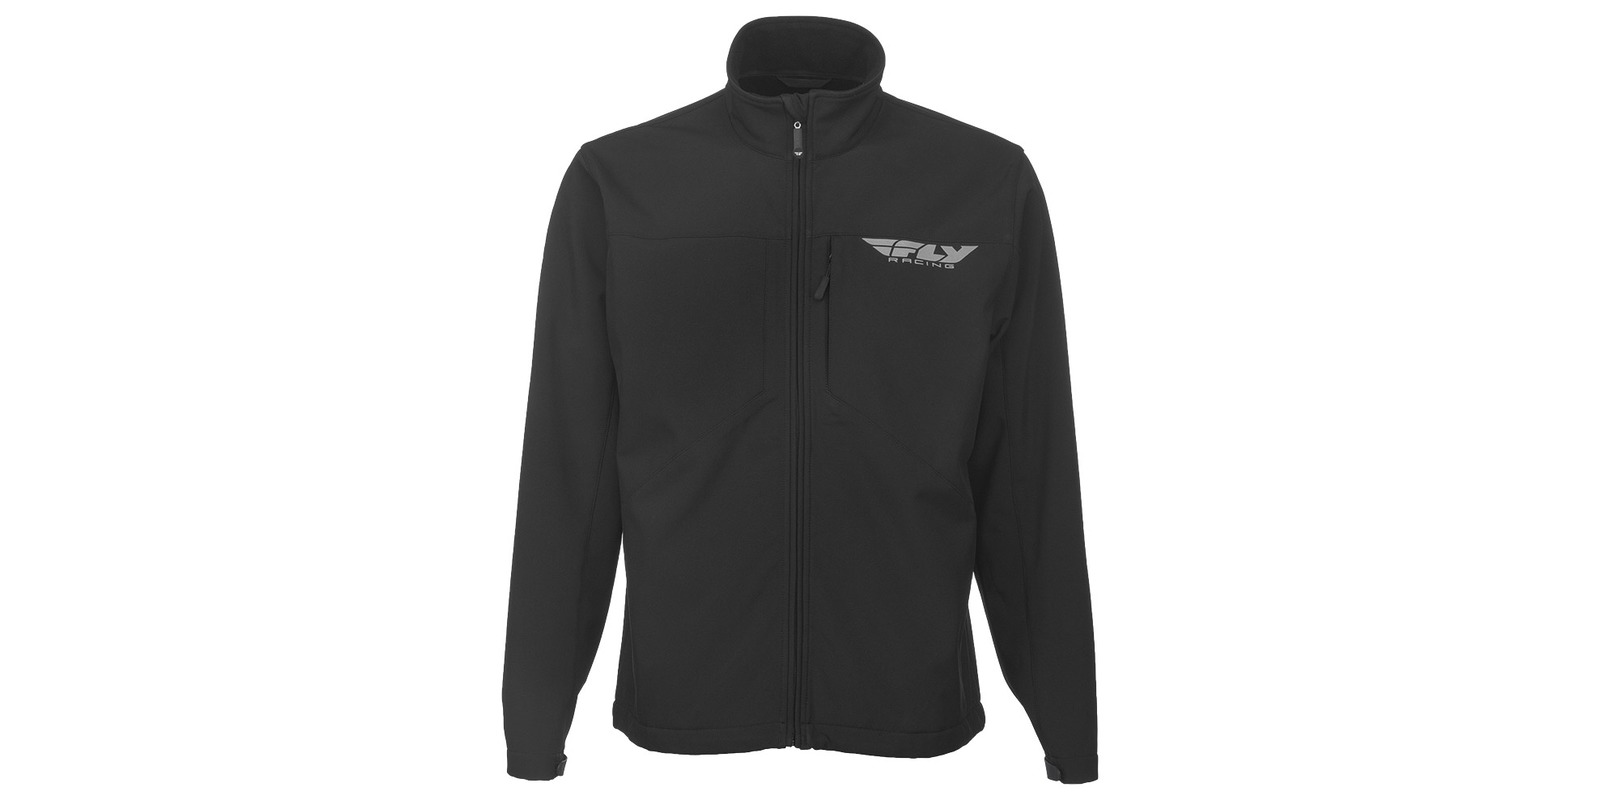 bunda OPS, FLY RACING - USA (black, vel. L)